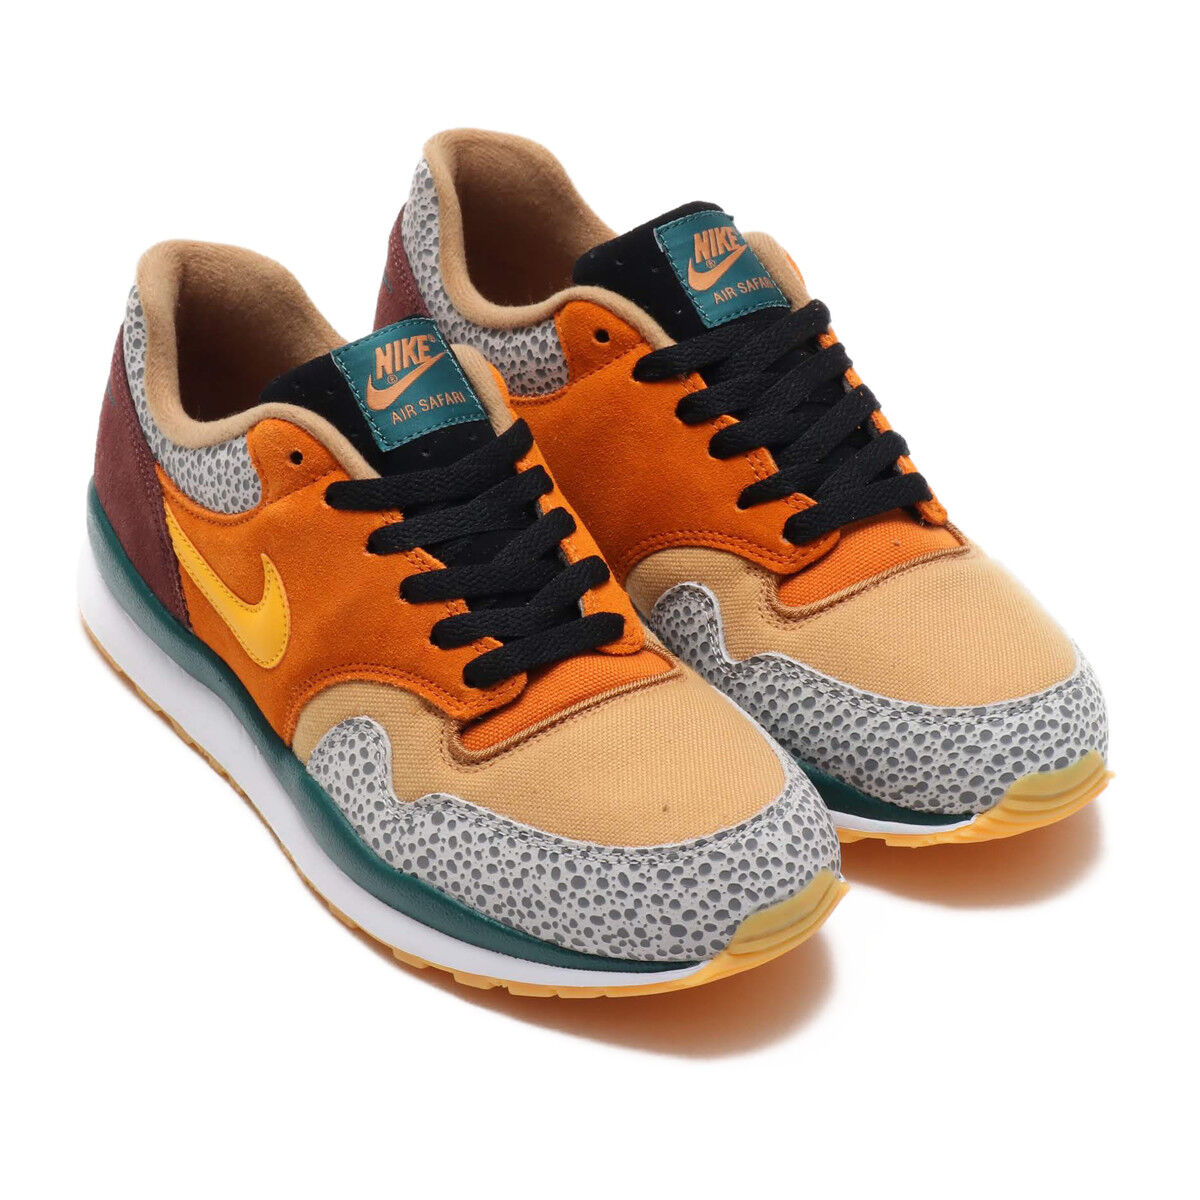 NIKE AIR SAFARI SE MONARCH/Jaune OCHRE-FLAX-MAHOGANY MINK US9